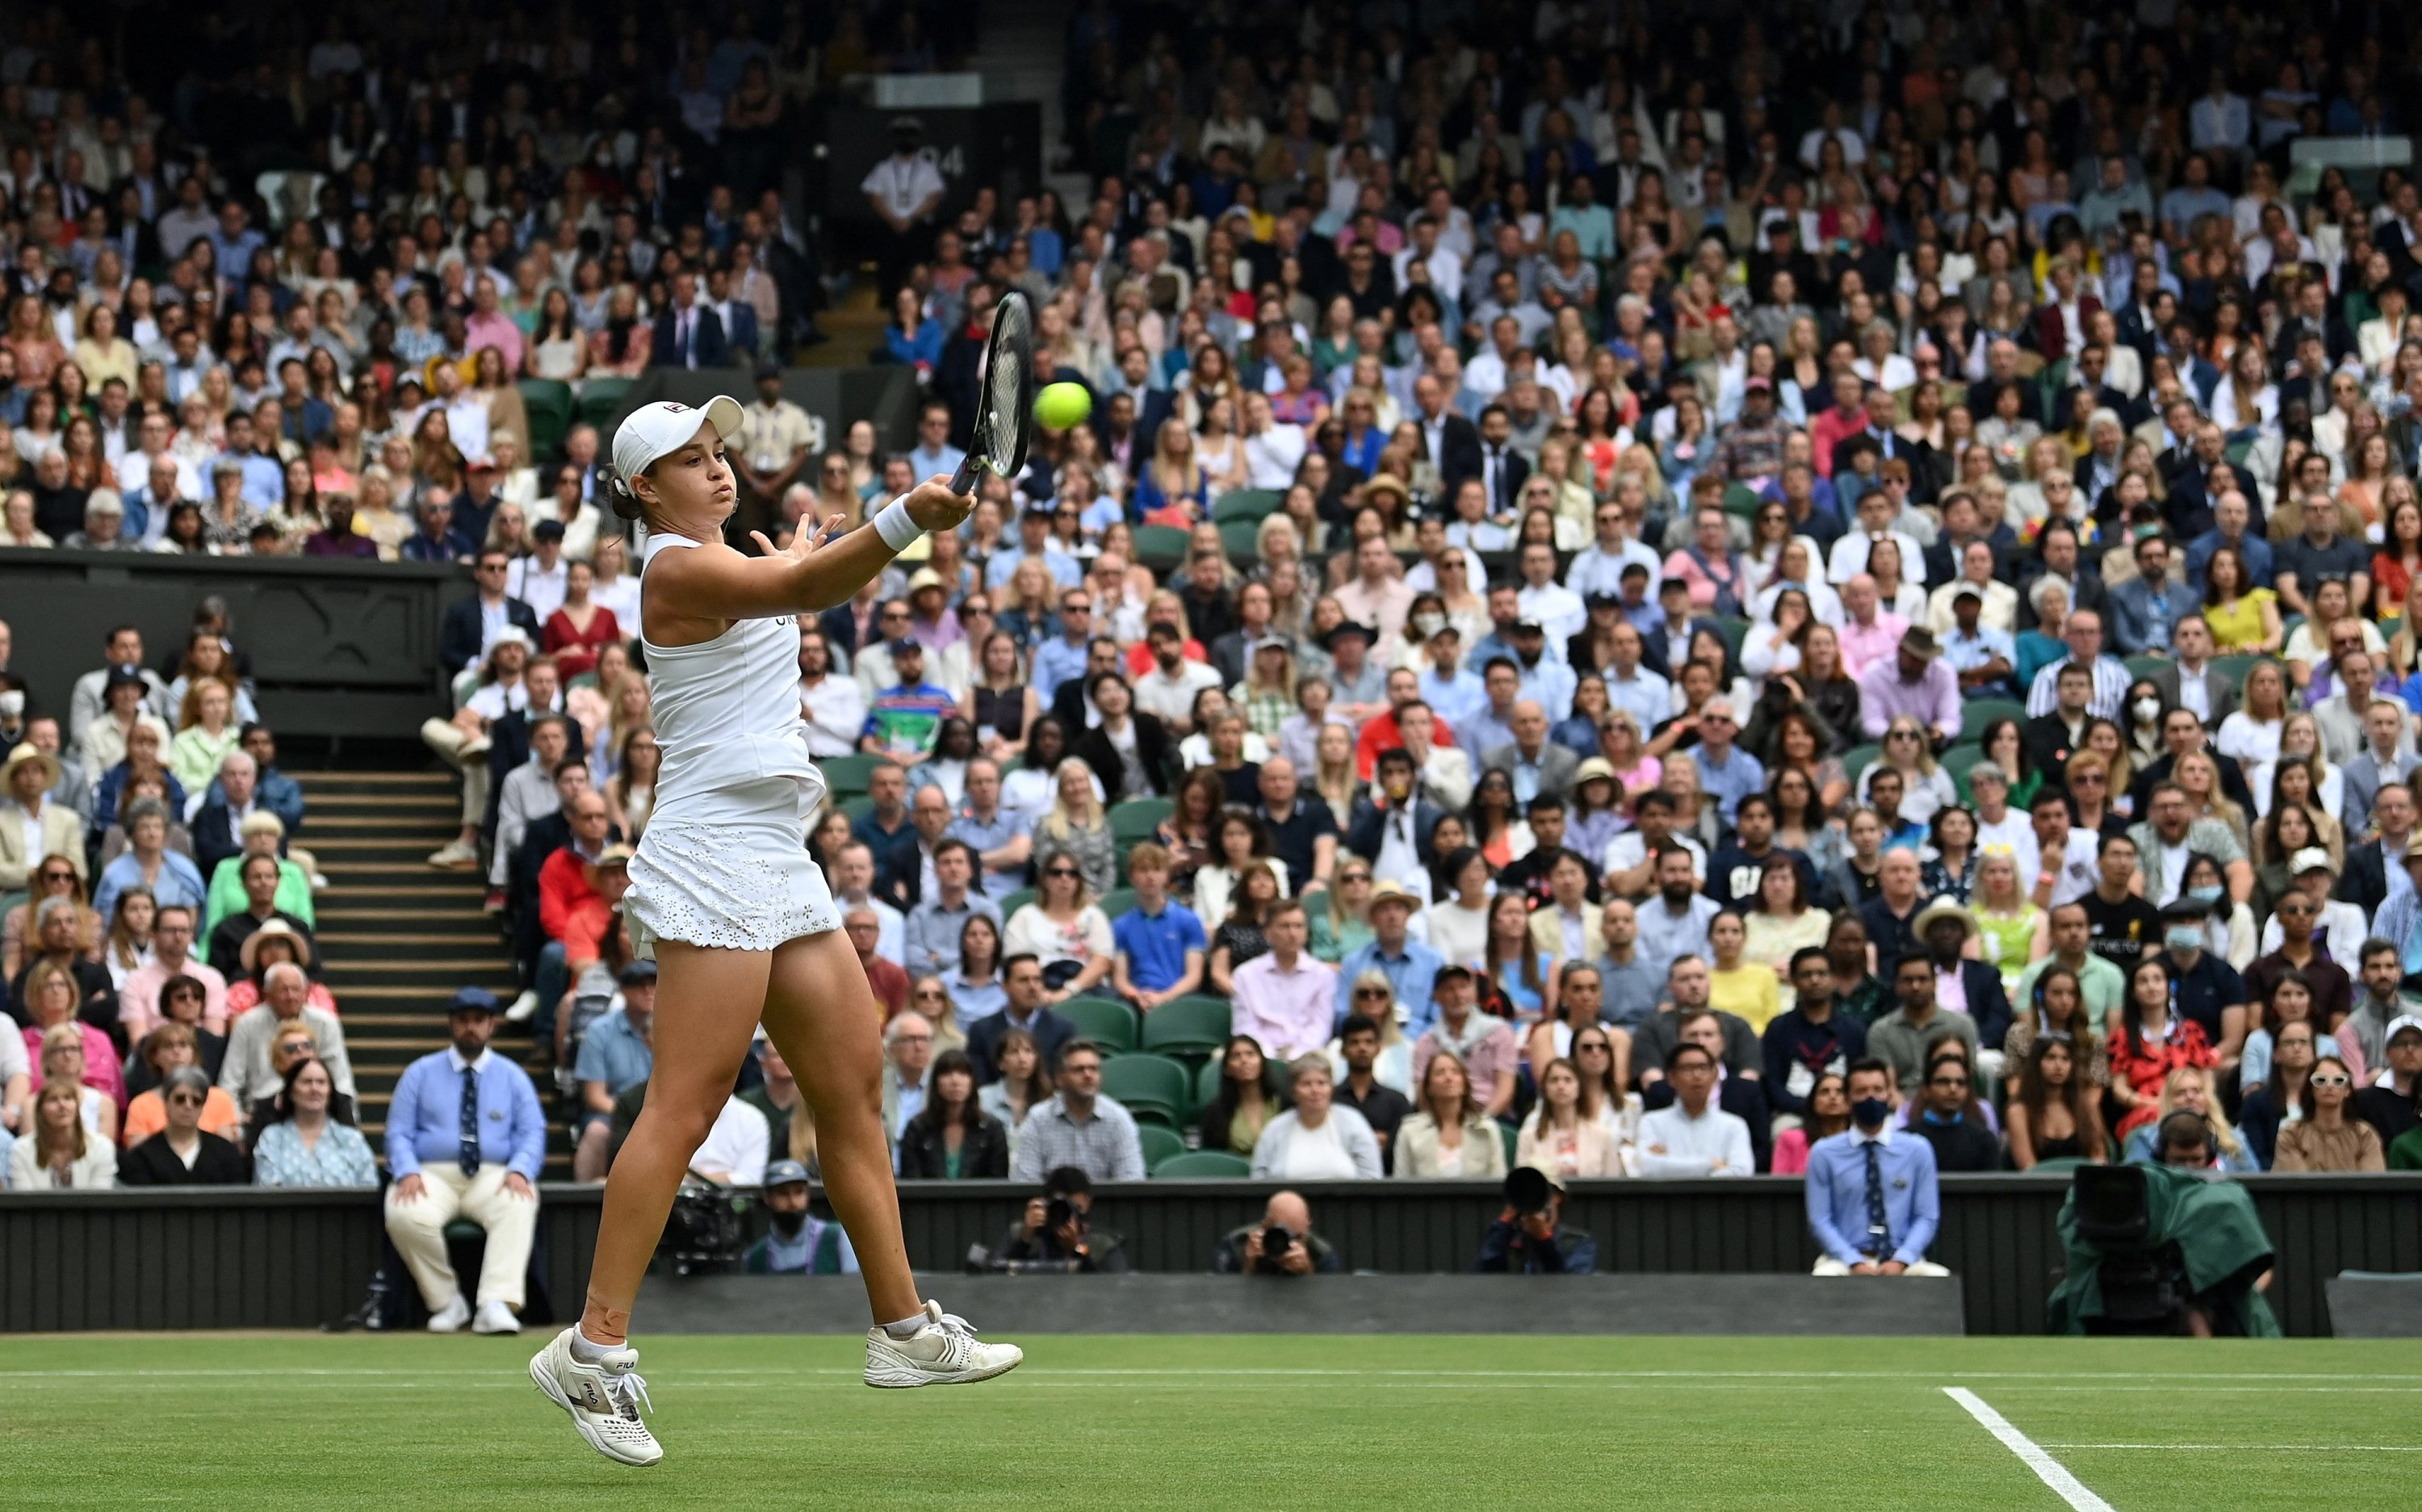 Australia's Ashleigh Barty returns against Czech Republic's Karolina Pliskova during their women's singles final match on the twelfth day of the 2021 Wimbledon Championships at The All England Tennis Club in Wimbledon, southwest London, on July 10, 2021. (AFP Photo)